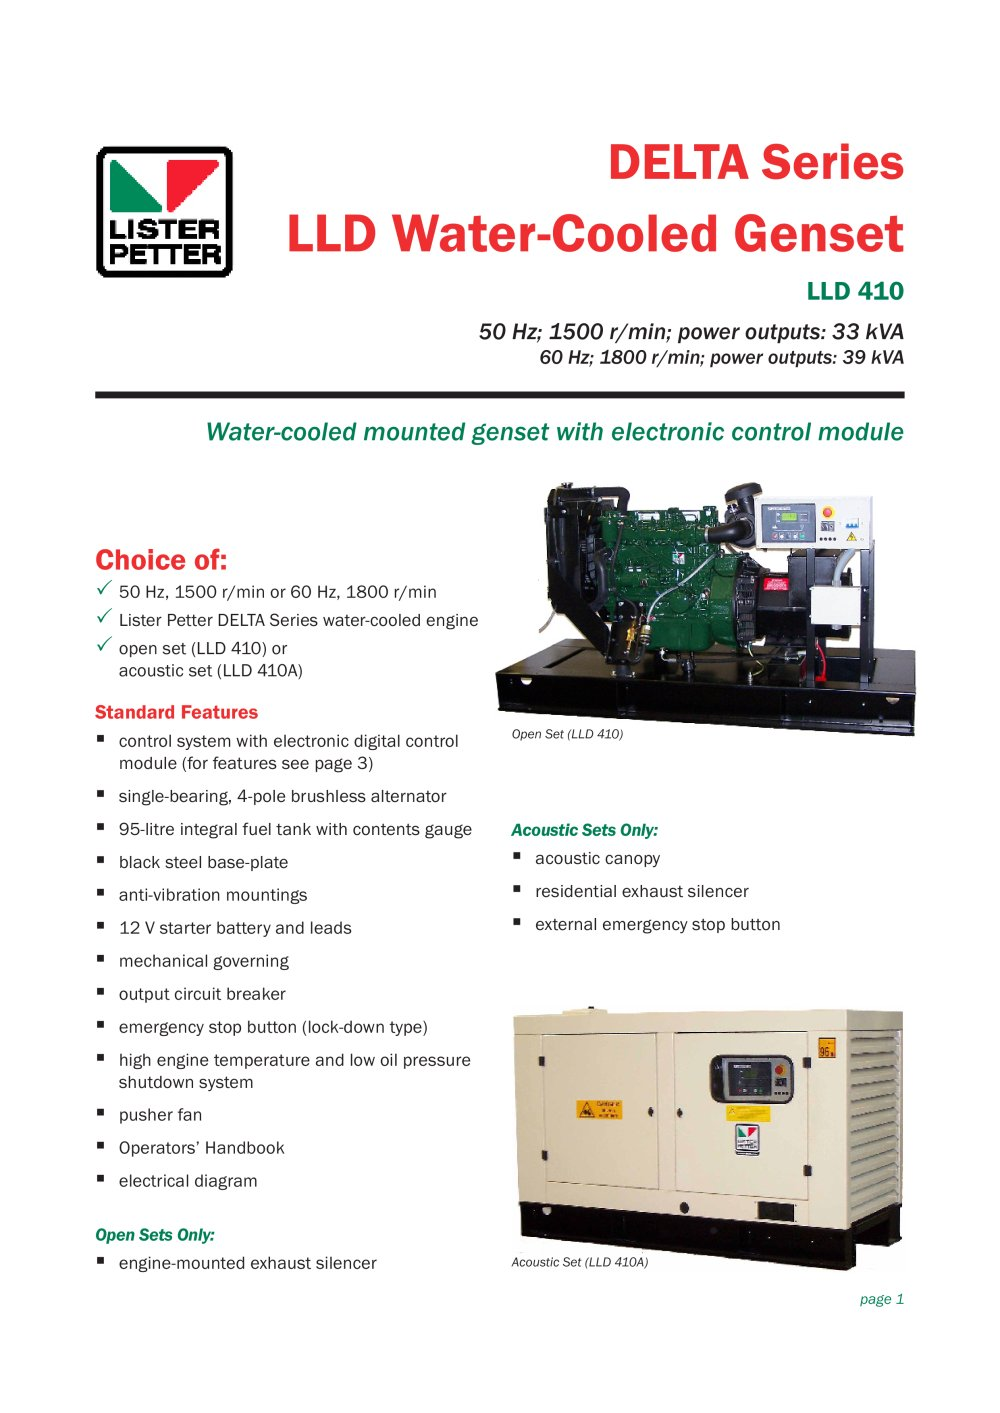 Delta Series Lld Water Cooled Genset Lister Petter Pdf Catalogue Engine Diagram 1 4 Pages